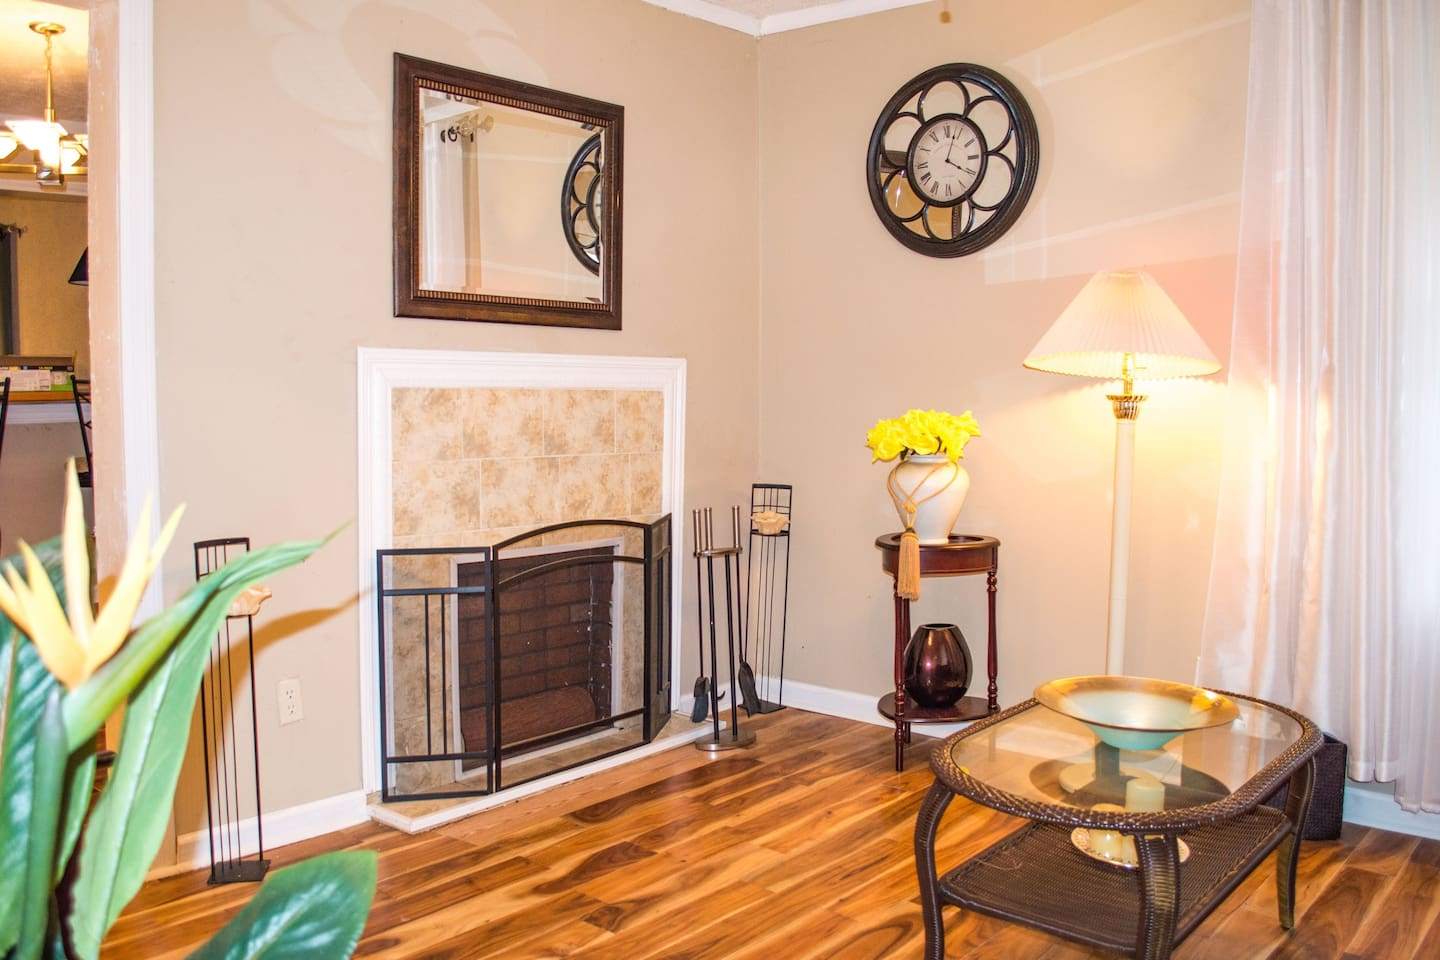 Very spacious Living Room  with fireplace and sofa bed.  House has many decorative features throughout